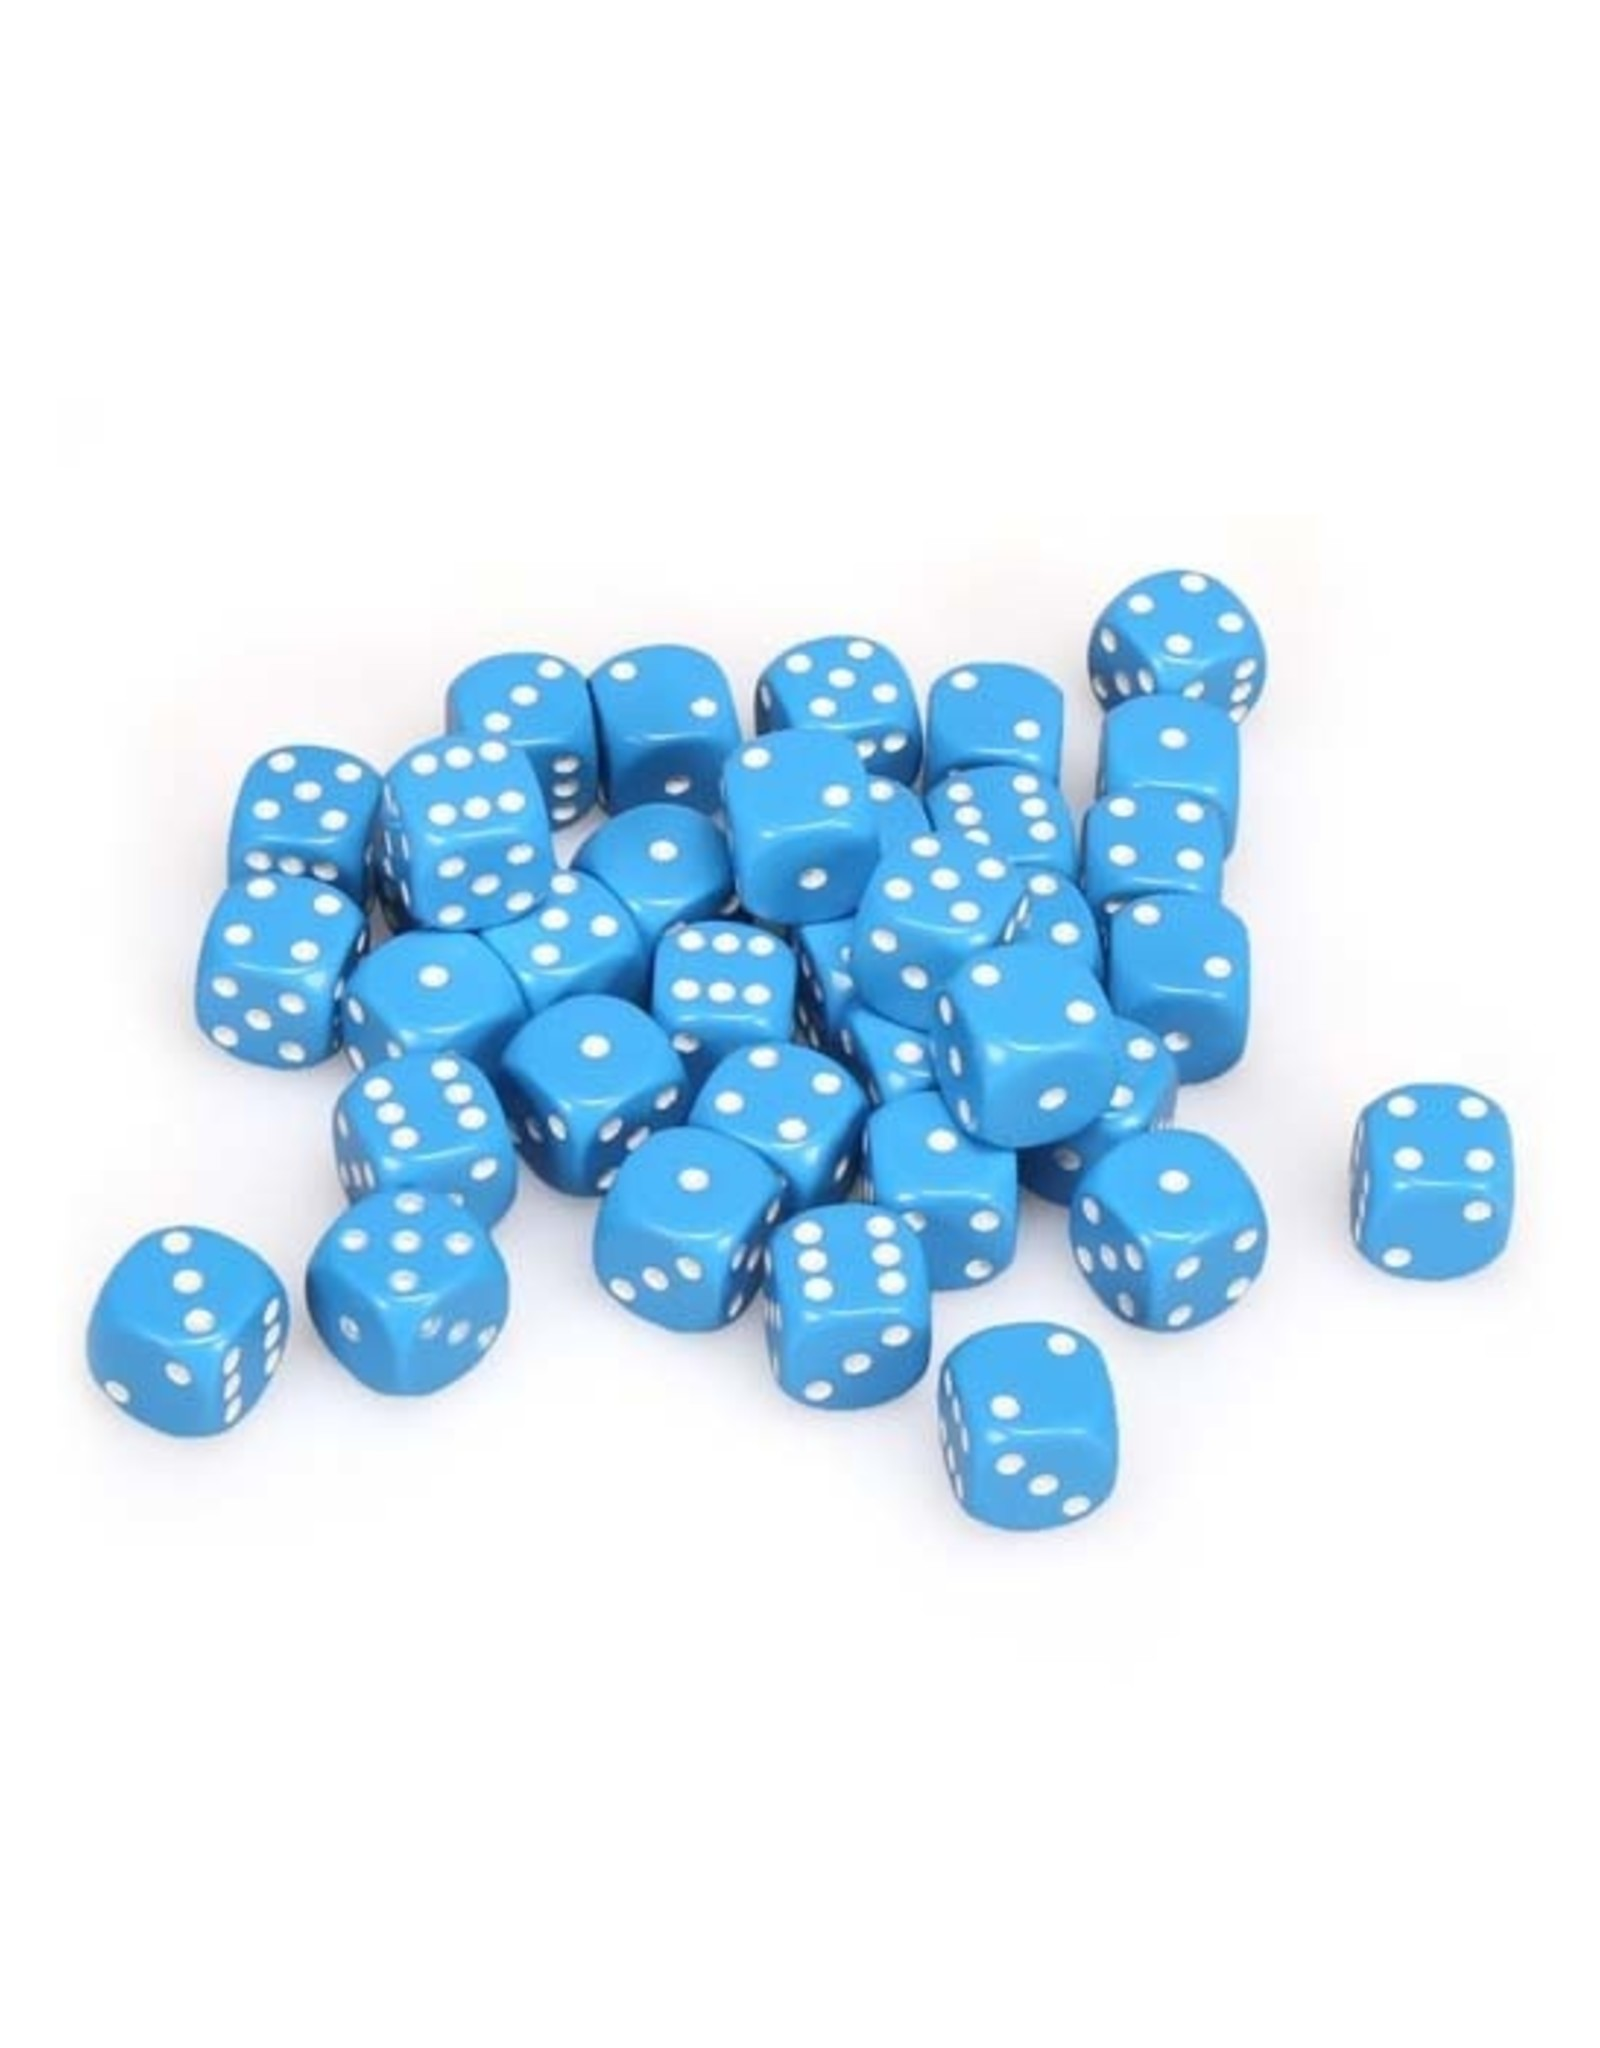 Chessex Chessex: 12mm D6 - Opaque - Blue w/ White